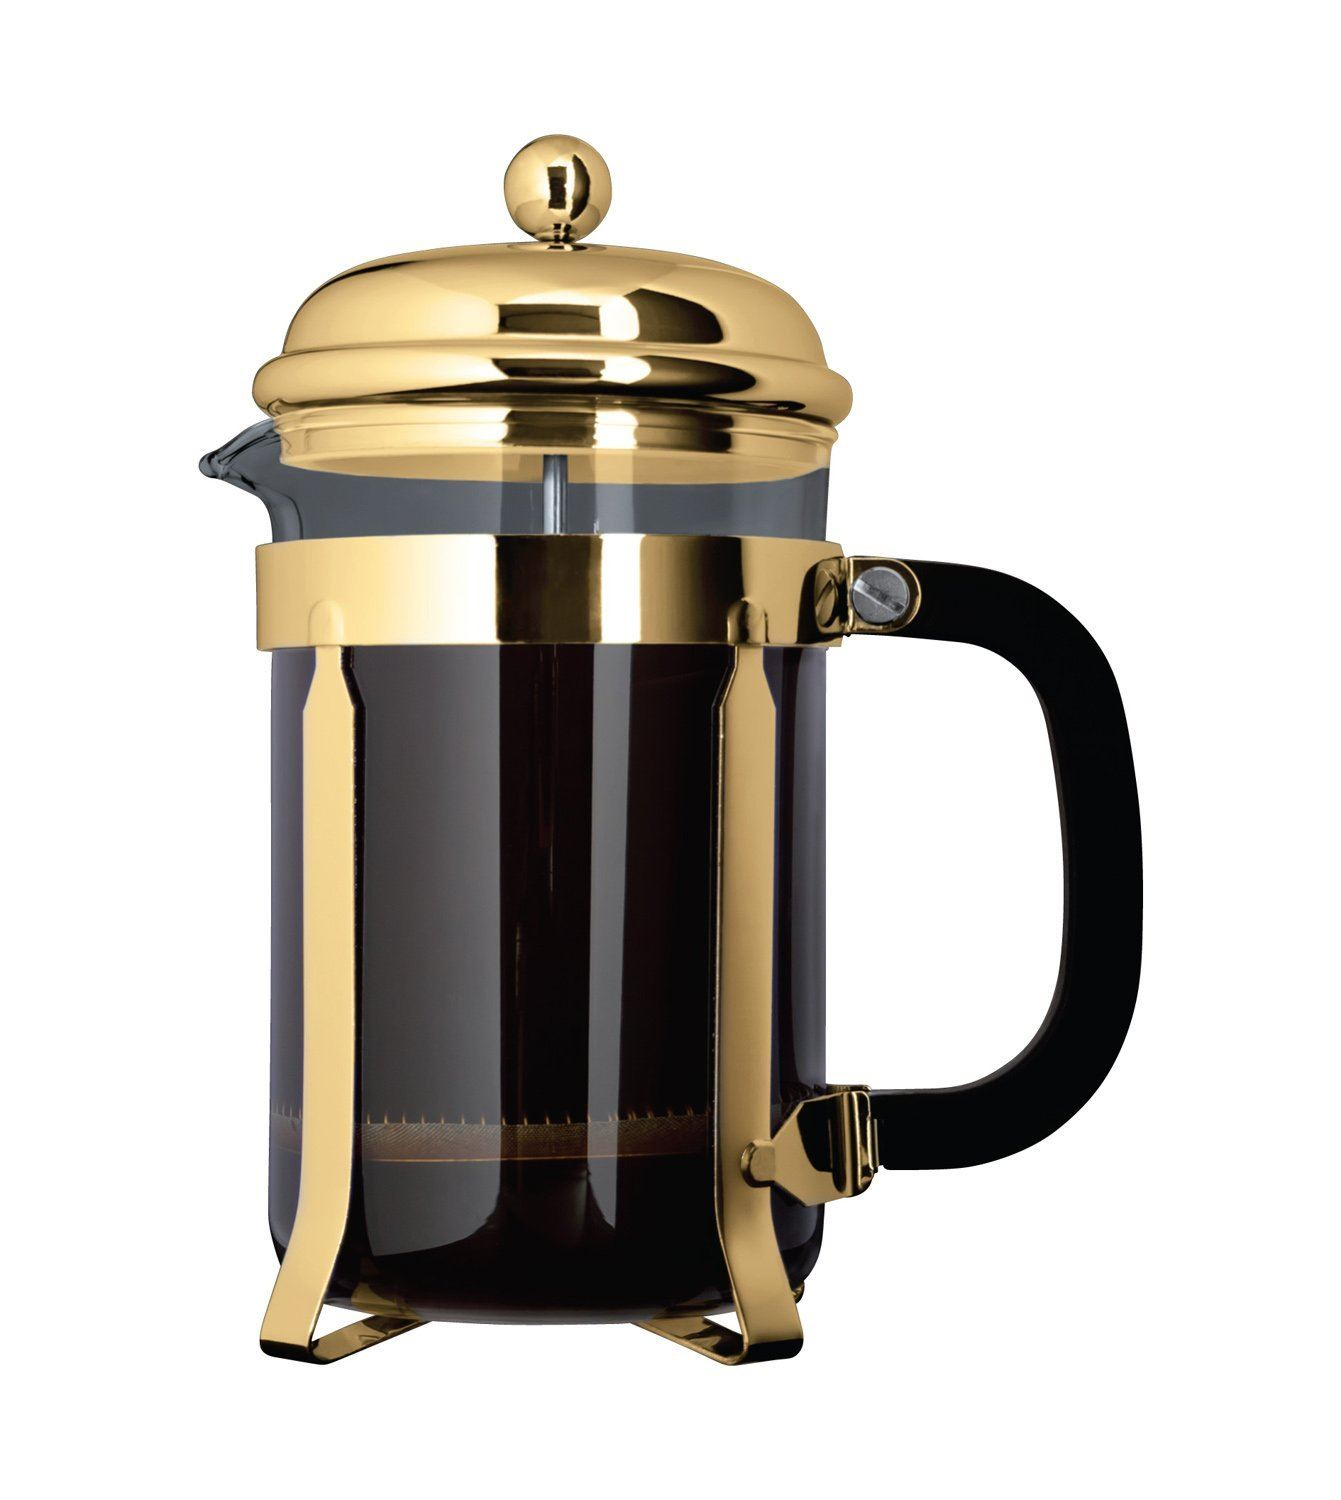 Caf? Ole By Grunwerg 3 Cup Classic Coffee Maker Glass Cafetiere, Gold Finish, 350 Ml 0.35 Litre